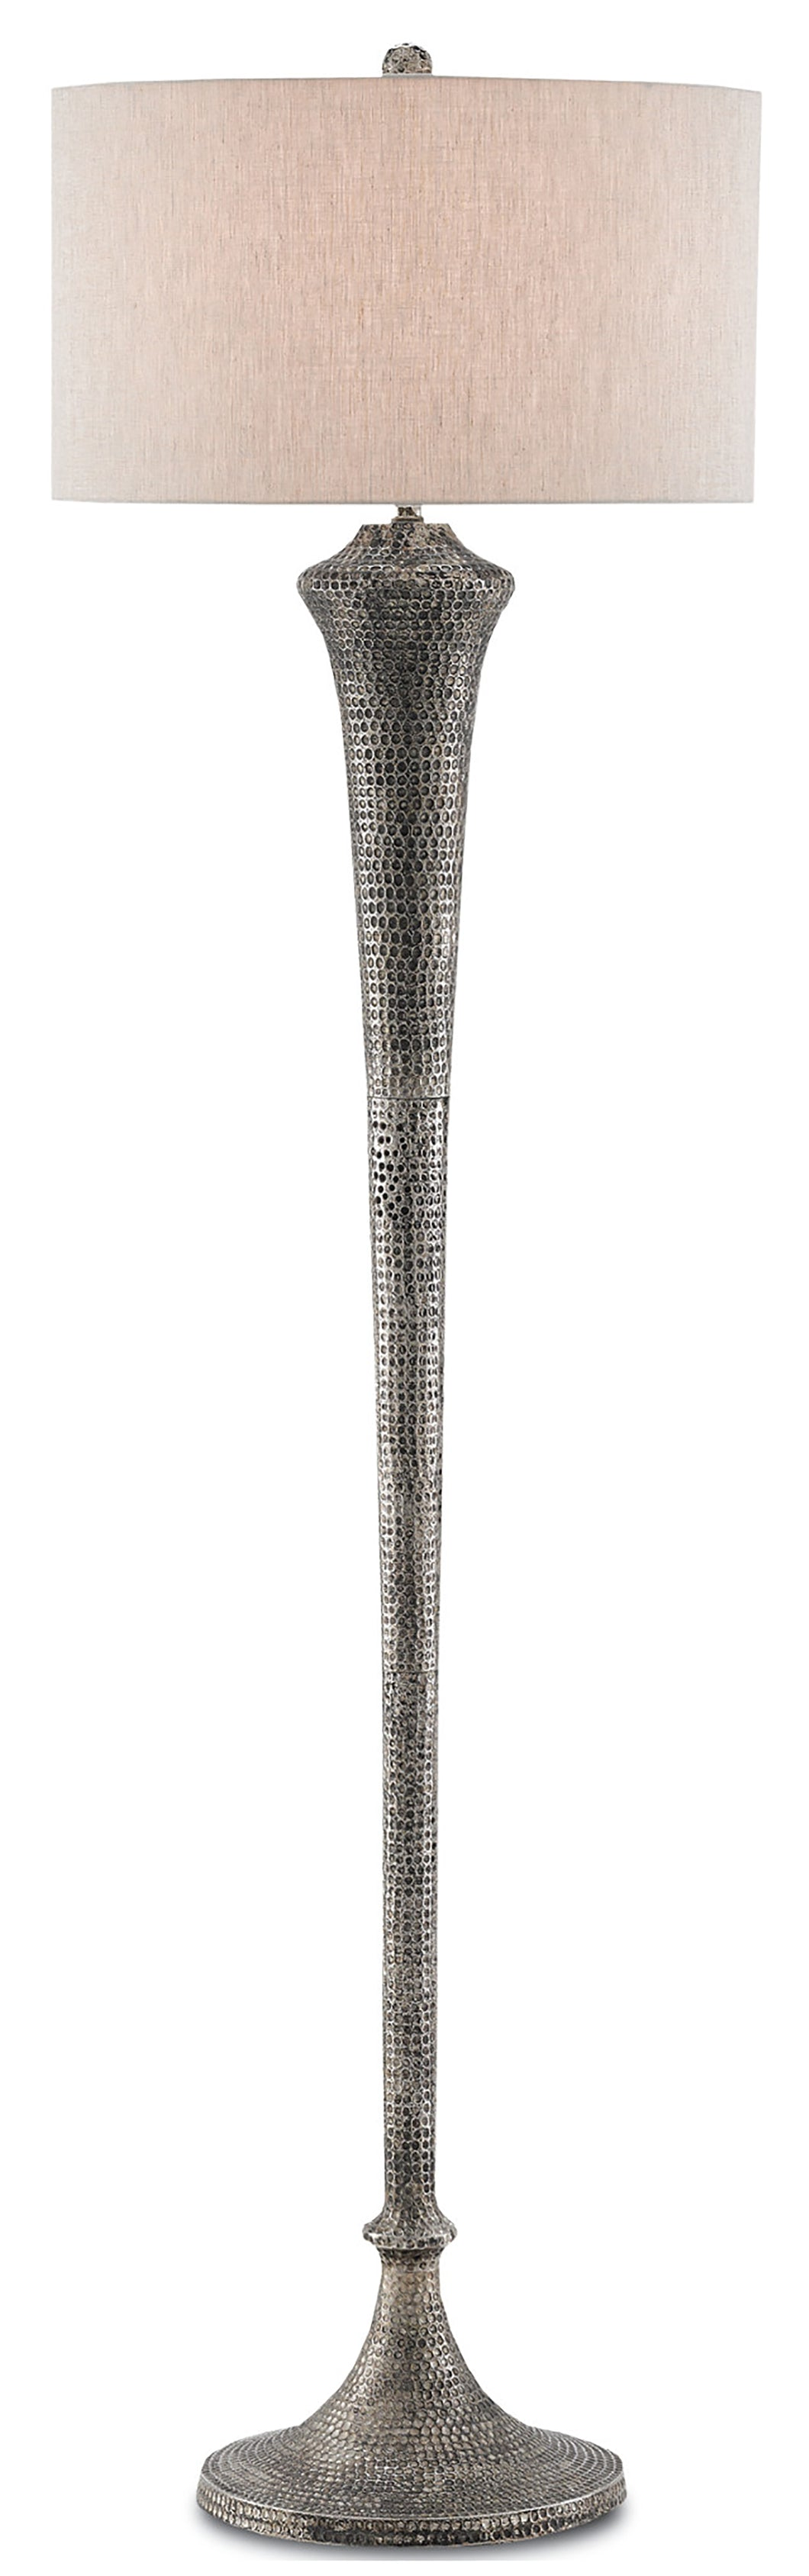 Kolono Floor Lamp